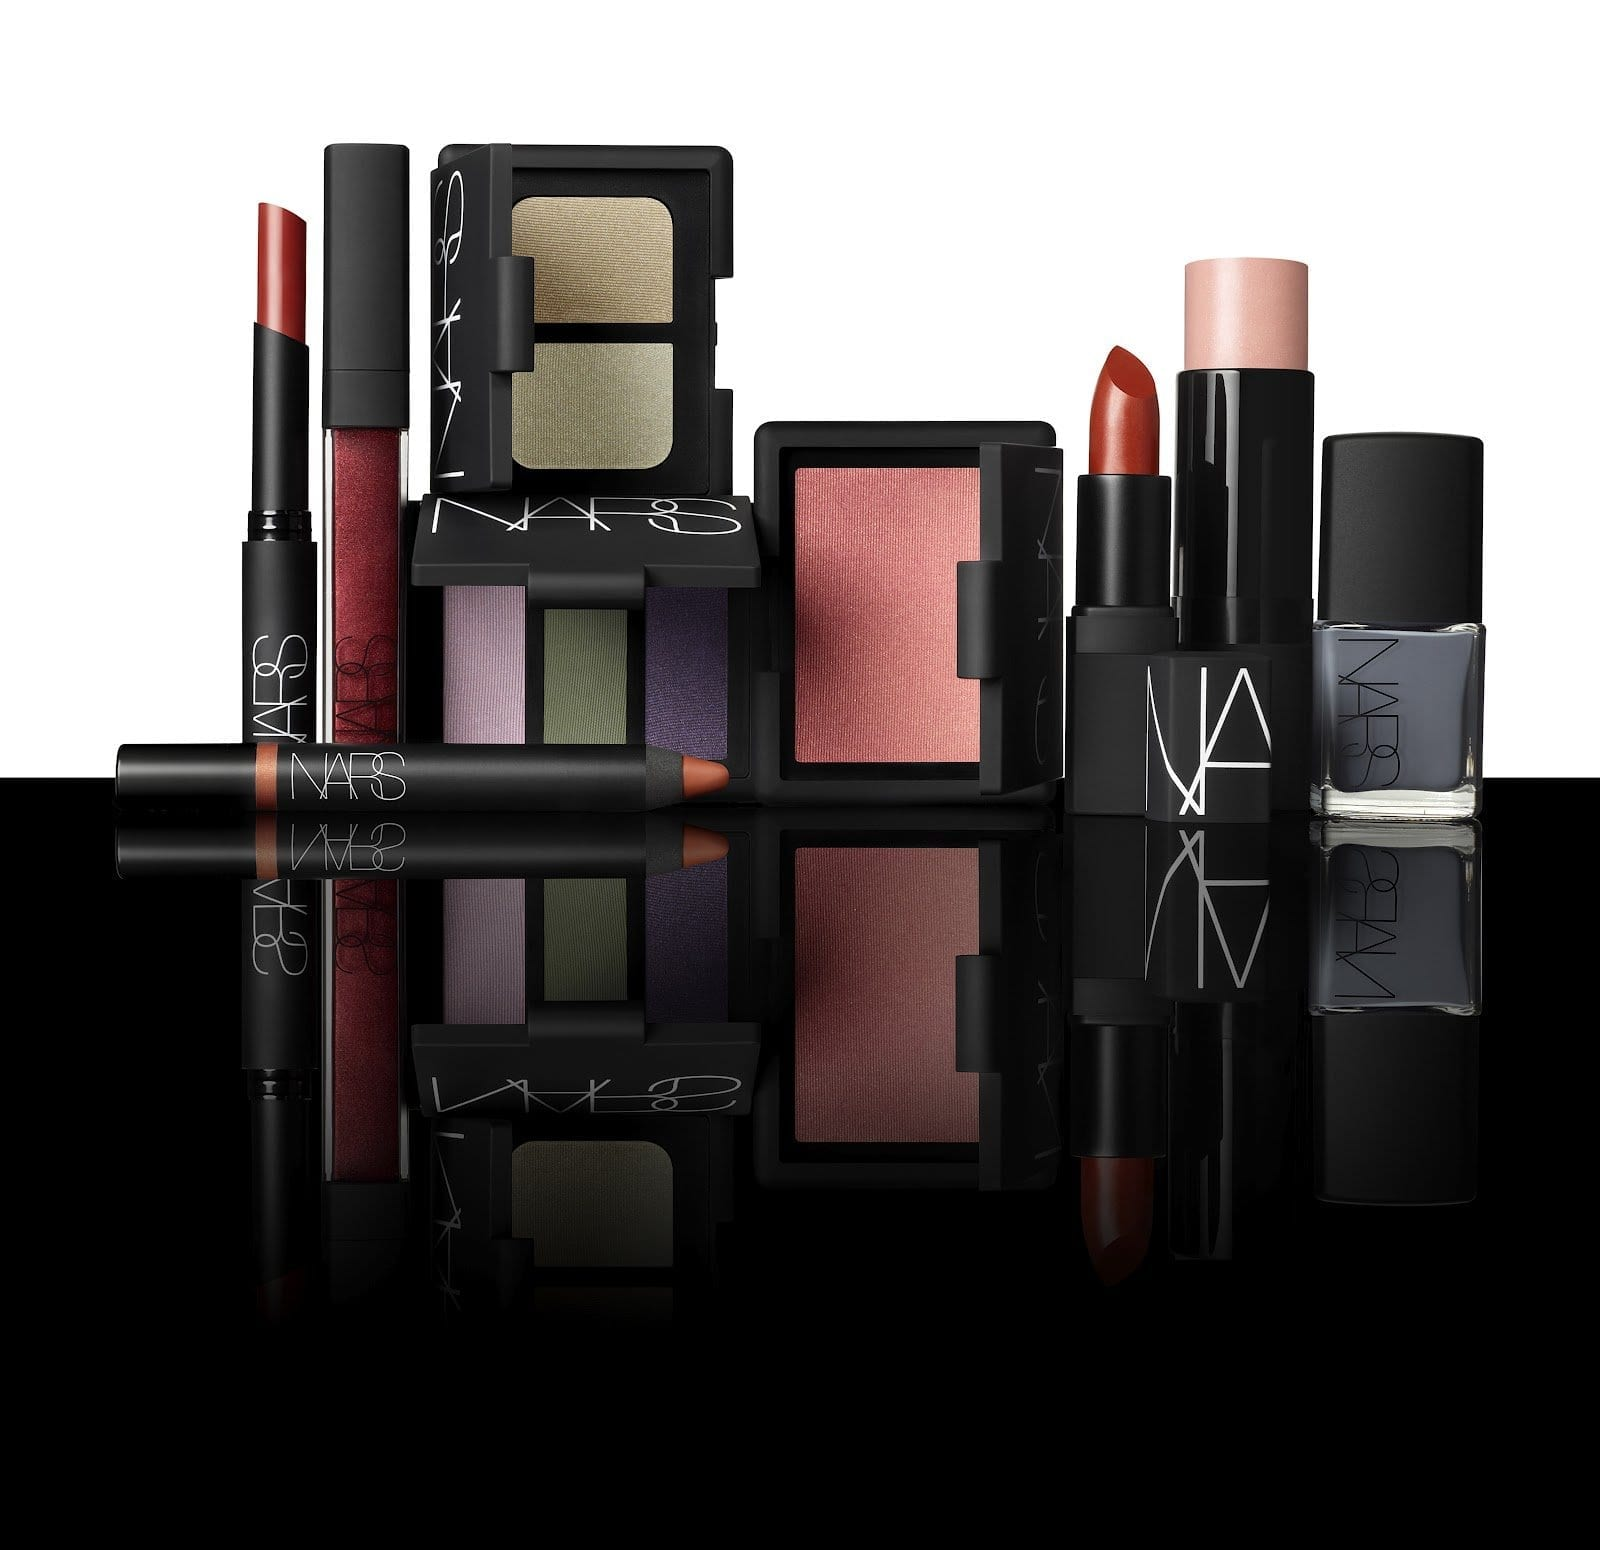 NARS-Fall-Group-Product-Shot-cropped-hi-res Top Cosmetic Brands 2017-10 Most Popular Beauty Brands List